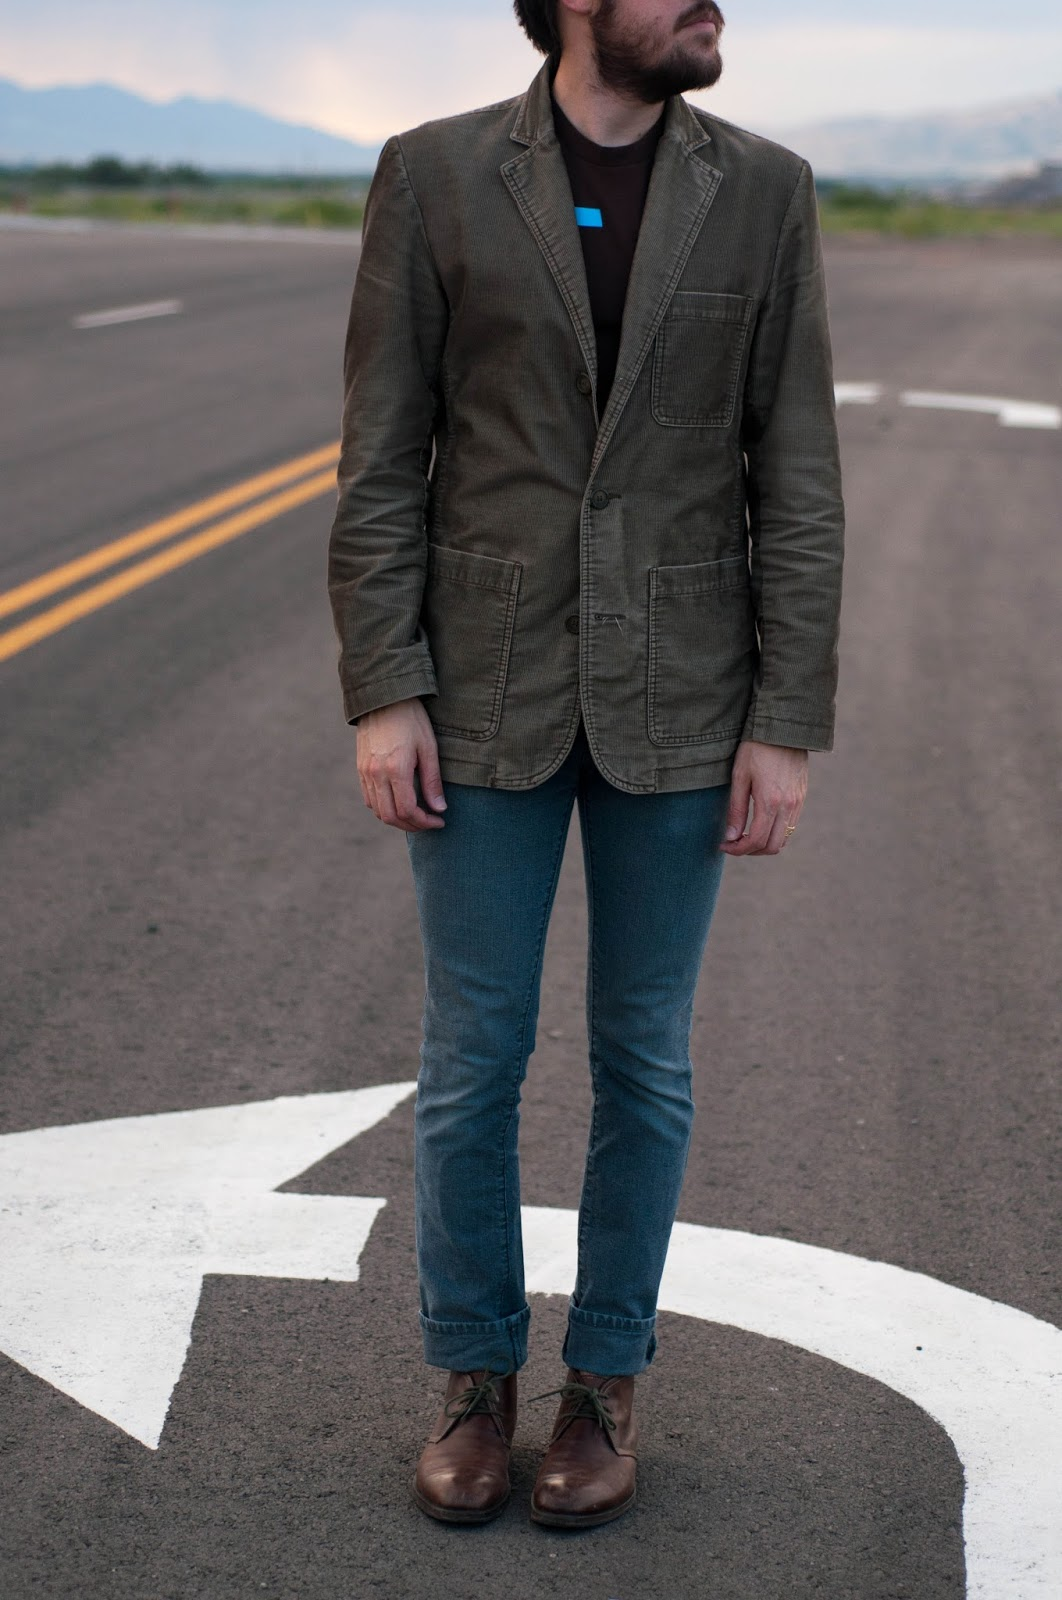 ootd, mens ootd, mens fashion, mens style, h and m, nordstrom savy, wiw